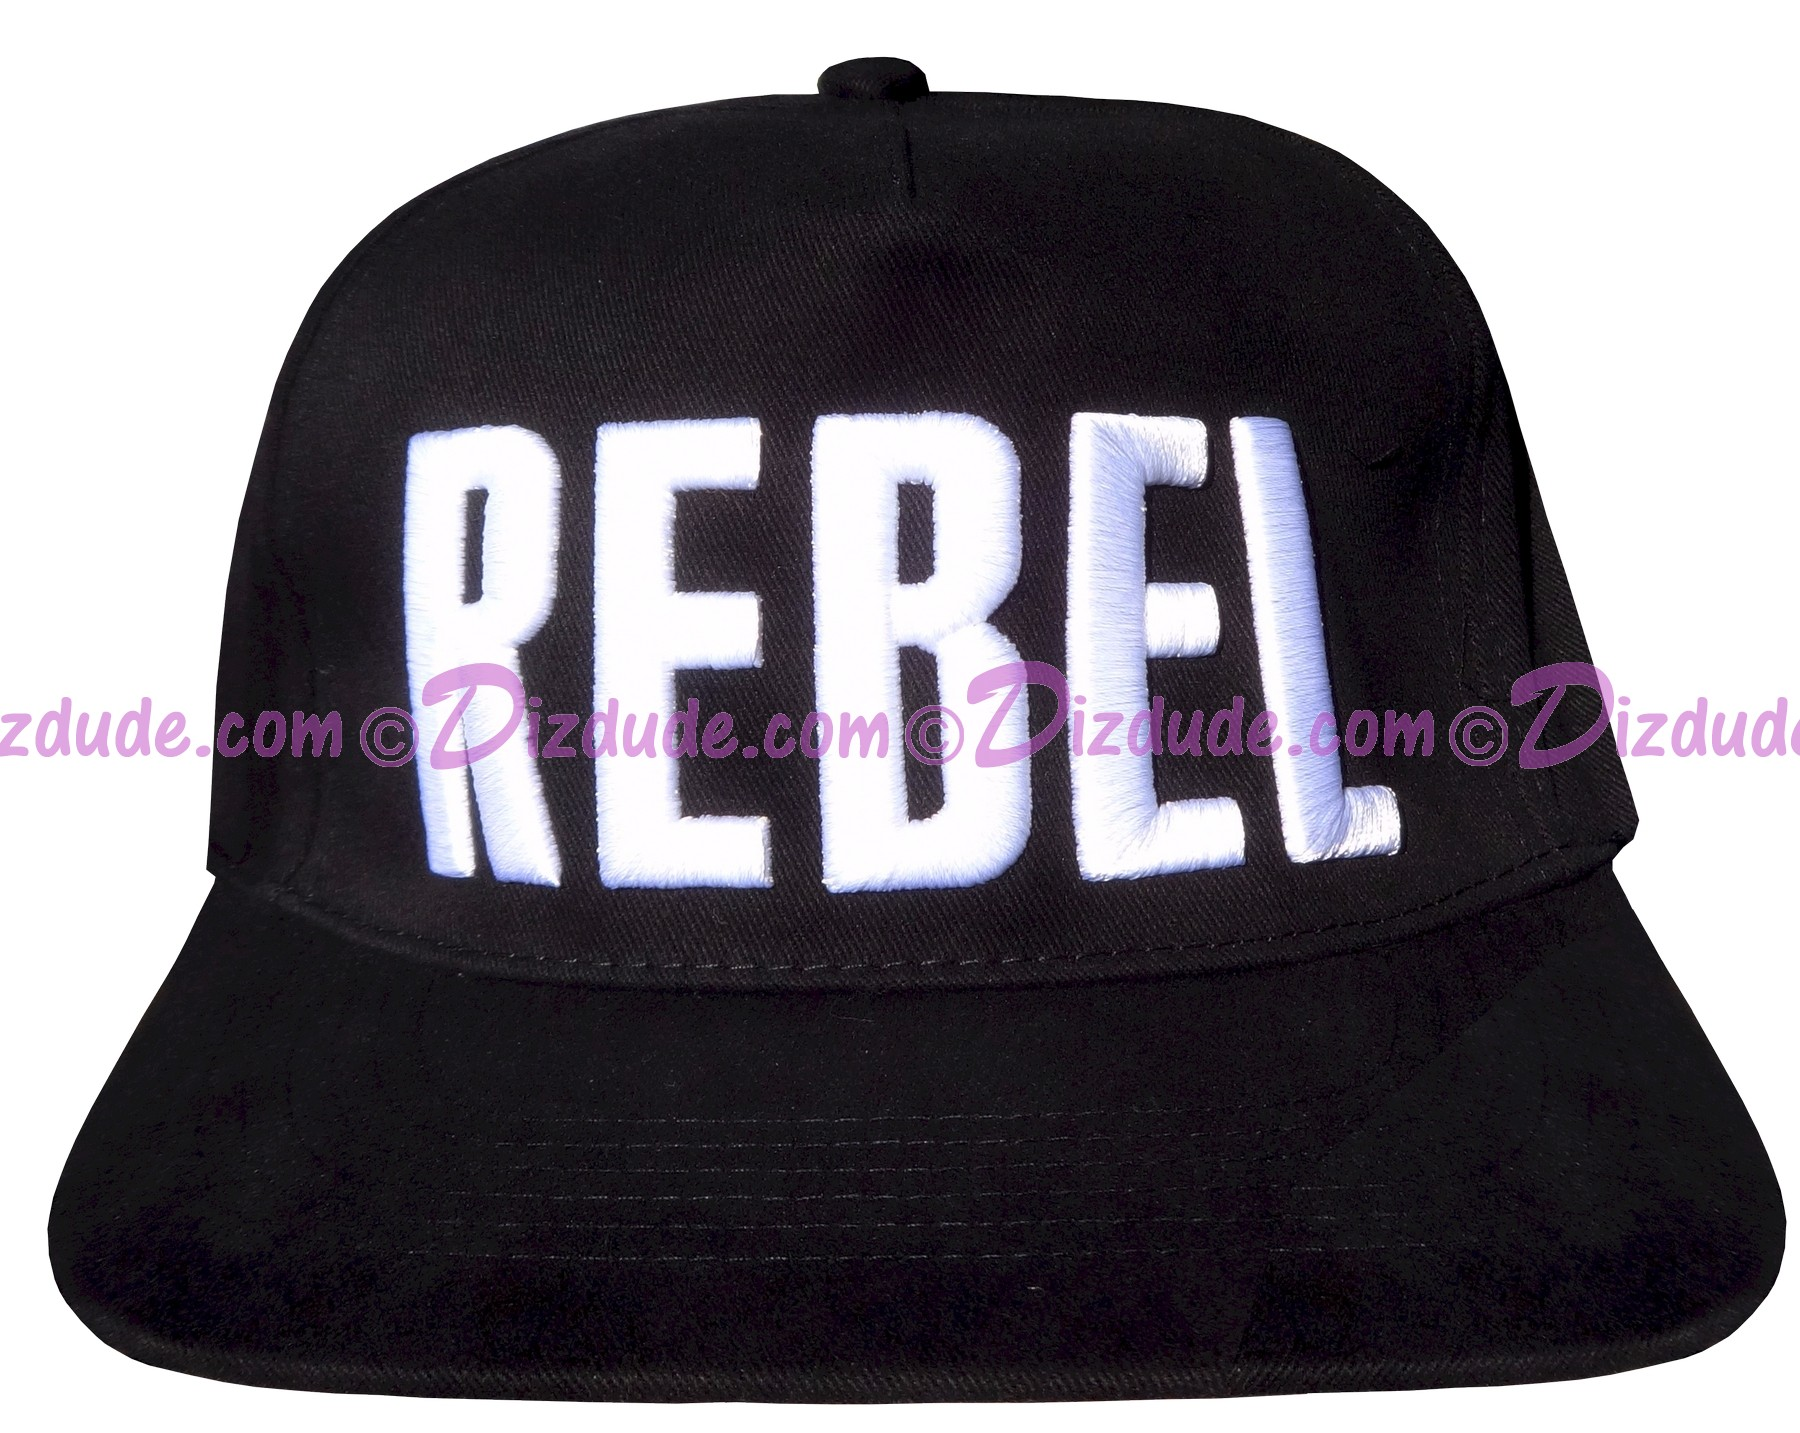 (SOLD OUT) Disney Star Tours REBEL Novelty Youth Baseball Cap